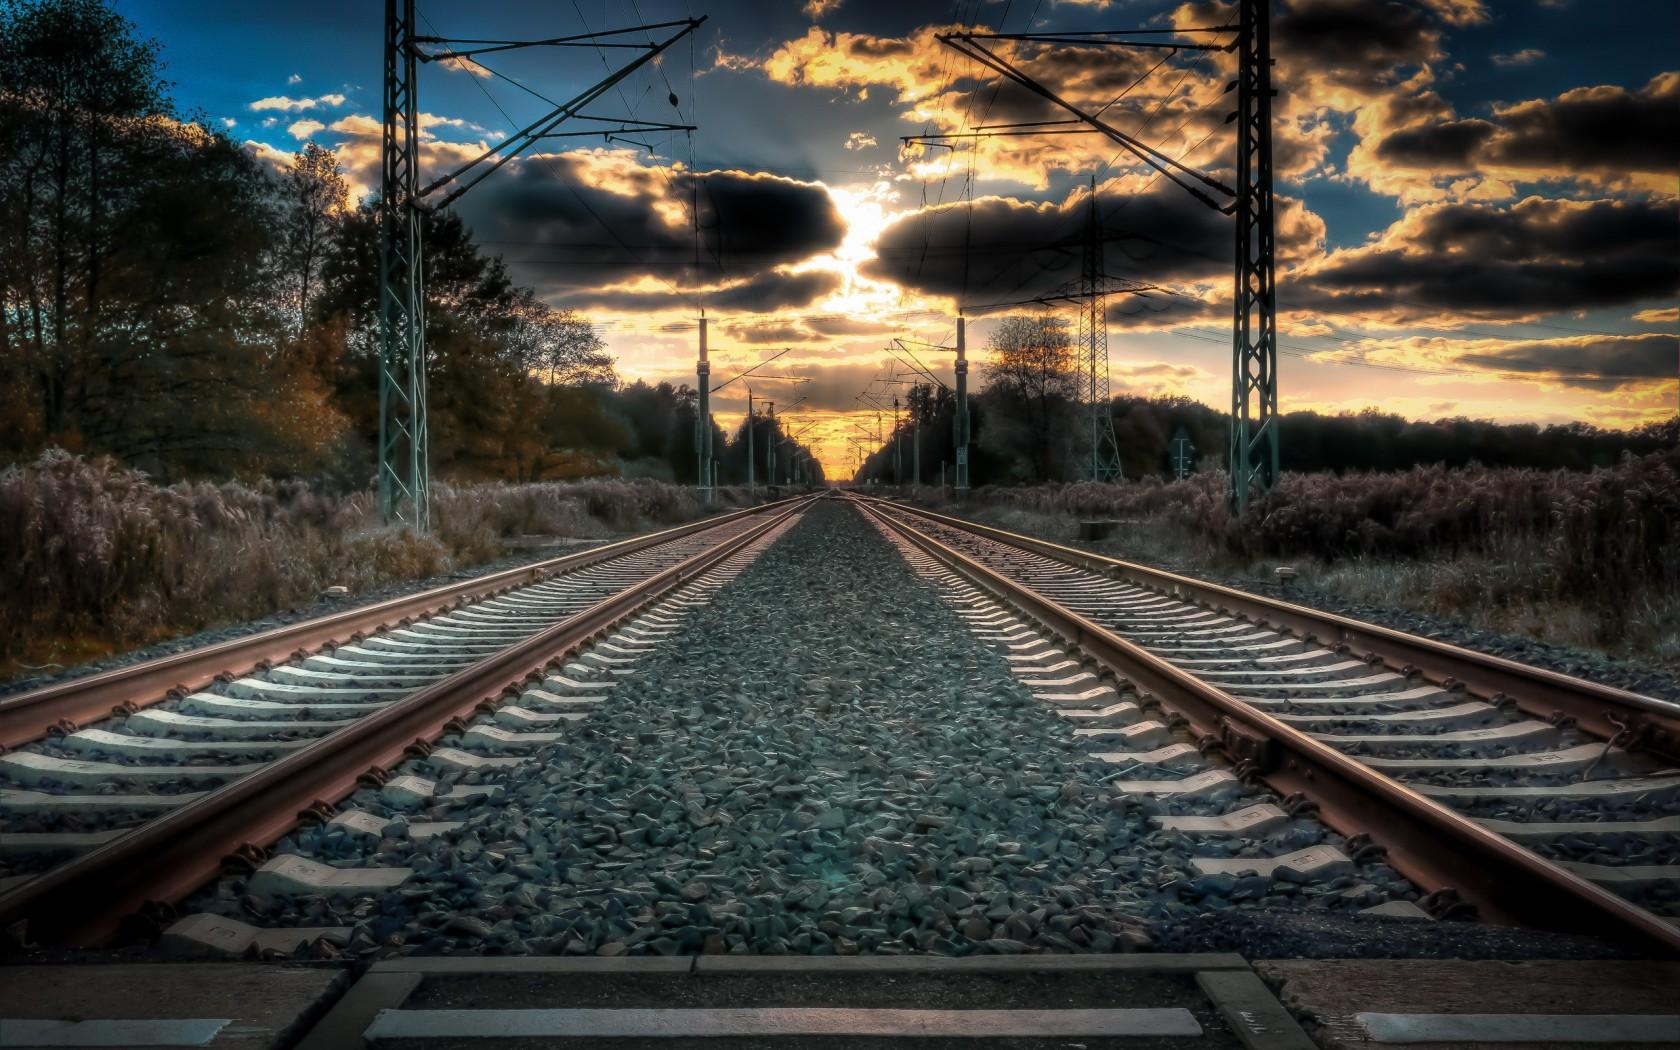 Iran to boost ties with Turkmenistan to complete Inche boron railroad